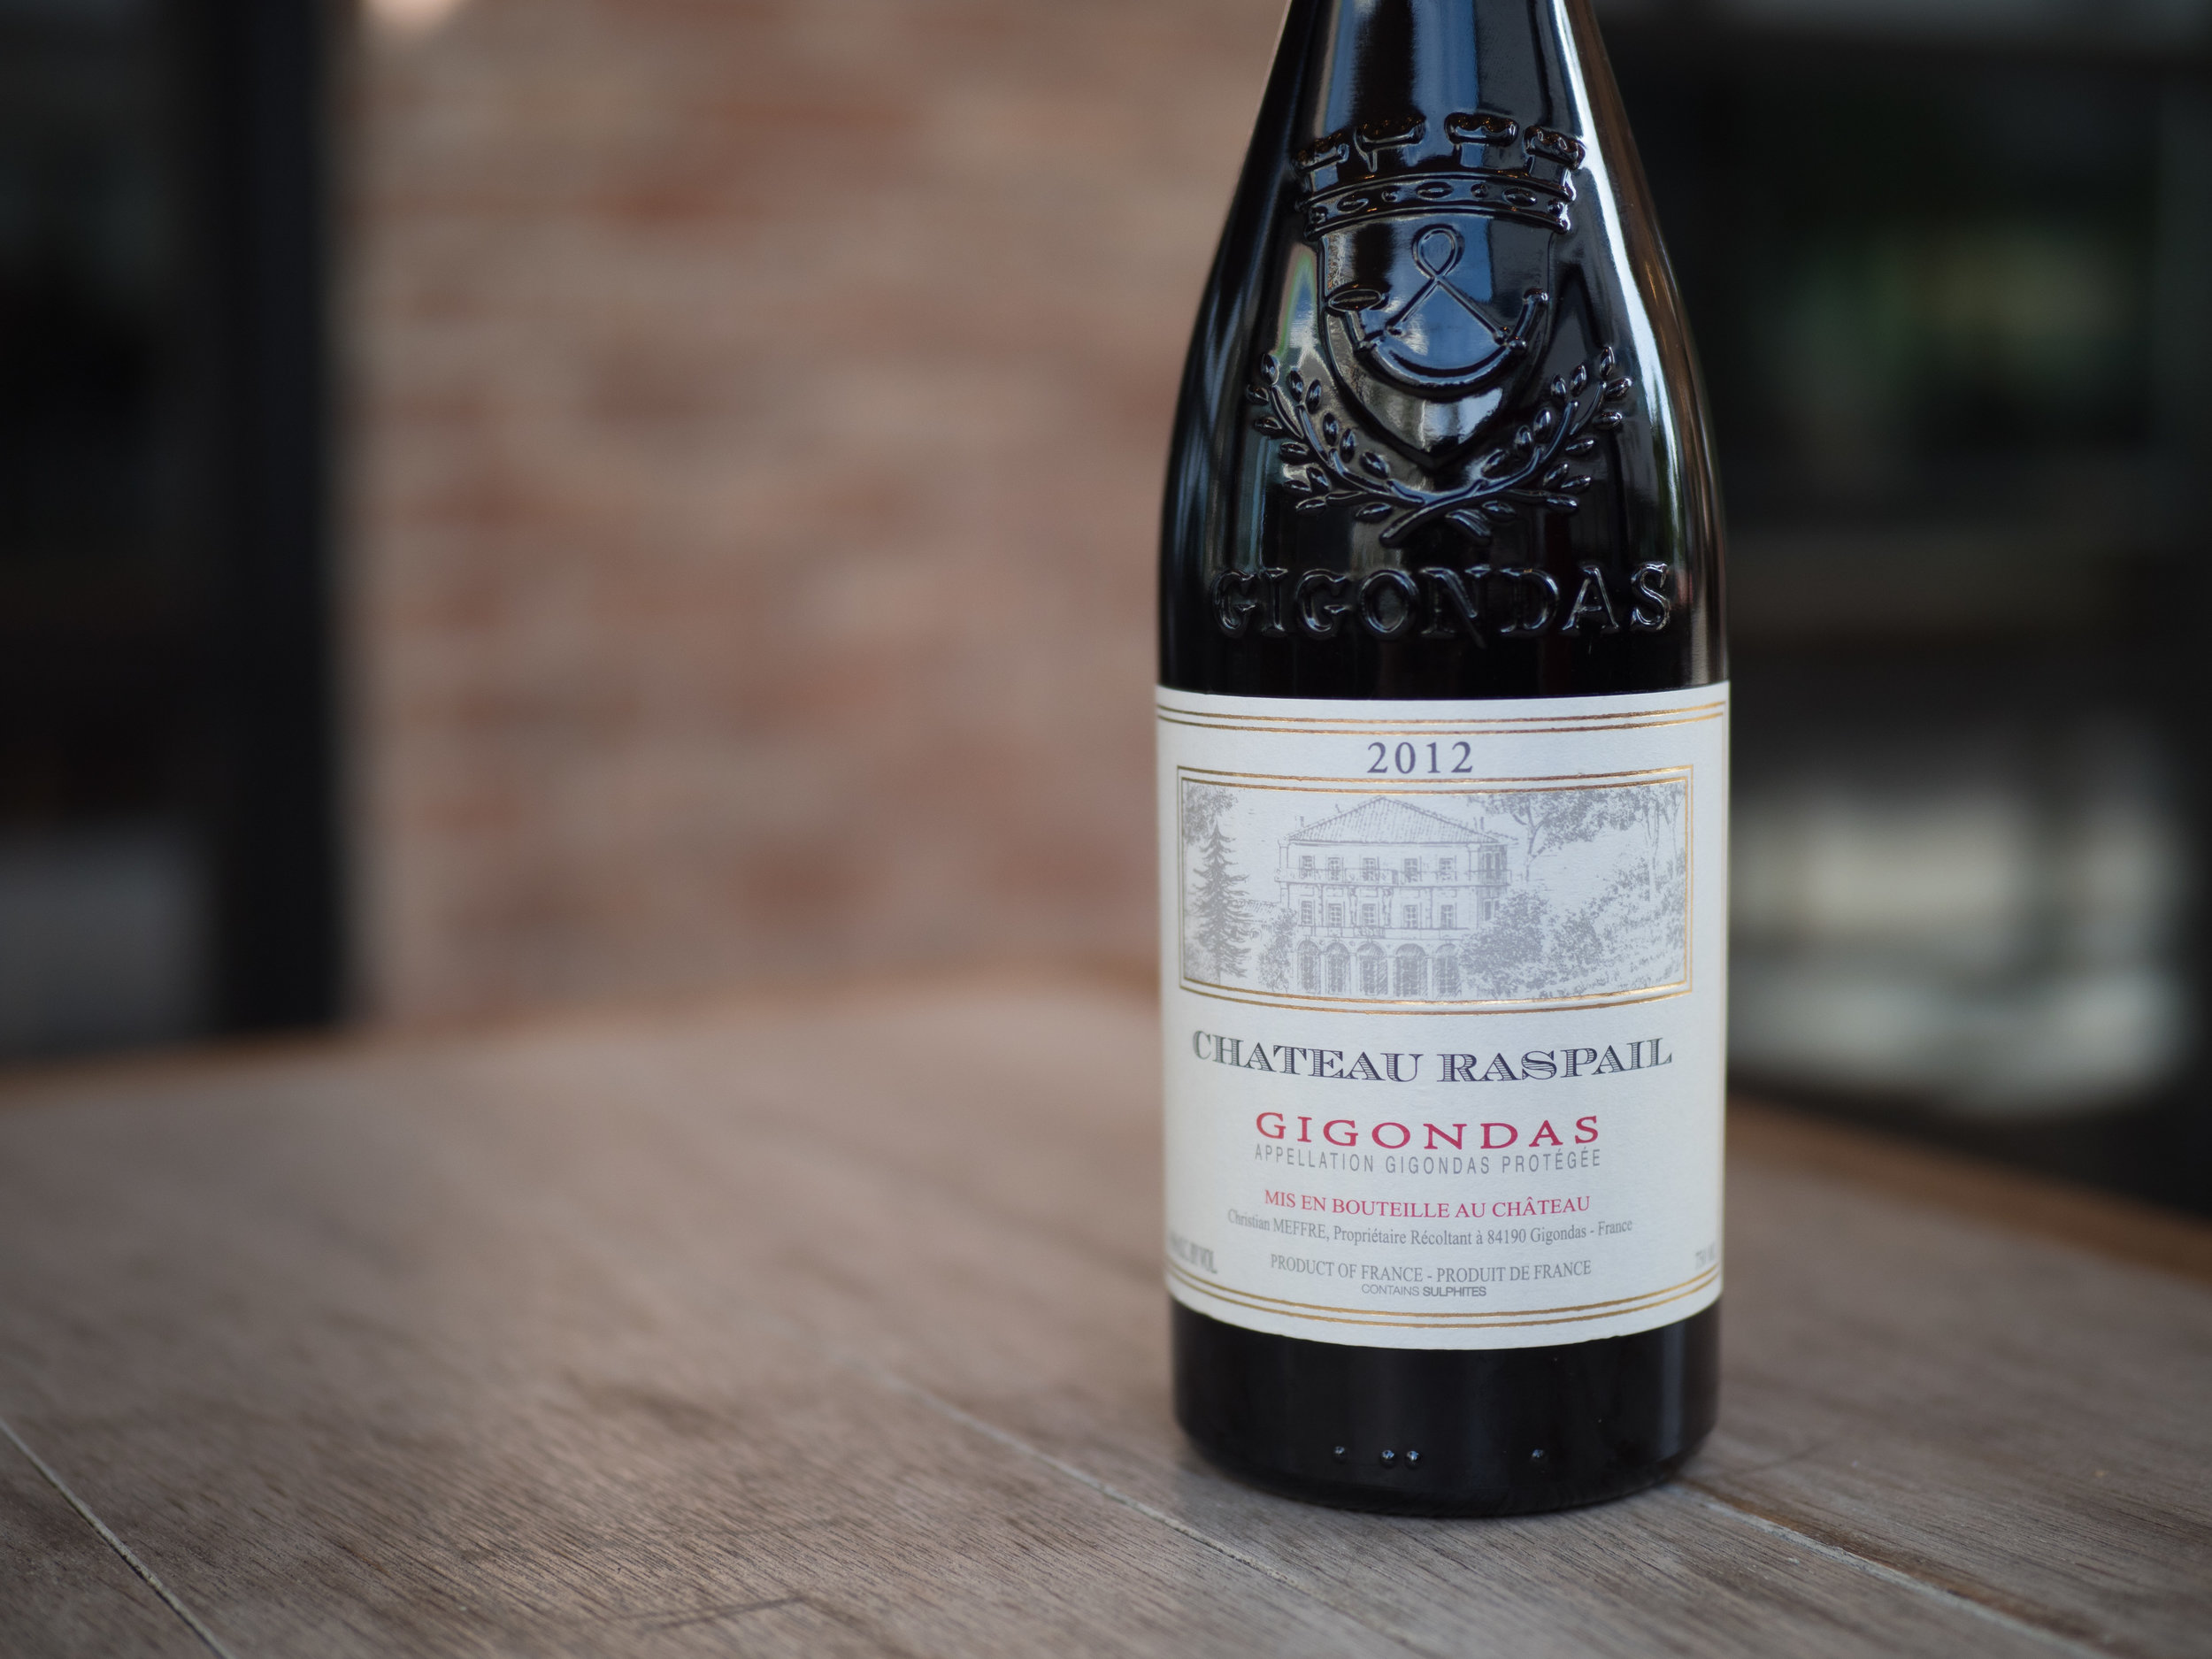 Vinous Label Elucidation - Decoding Southern Rhone Wine Labels - AOCs of Southern Rhone Valley